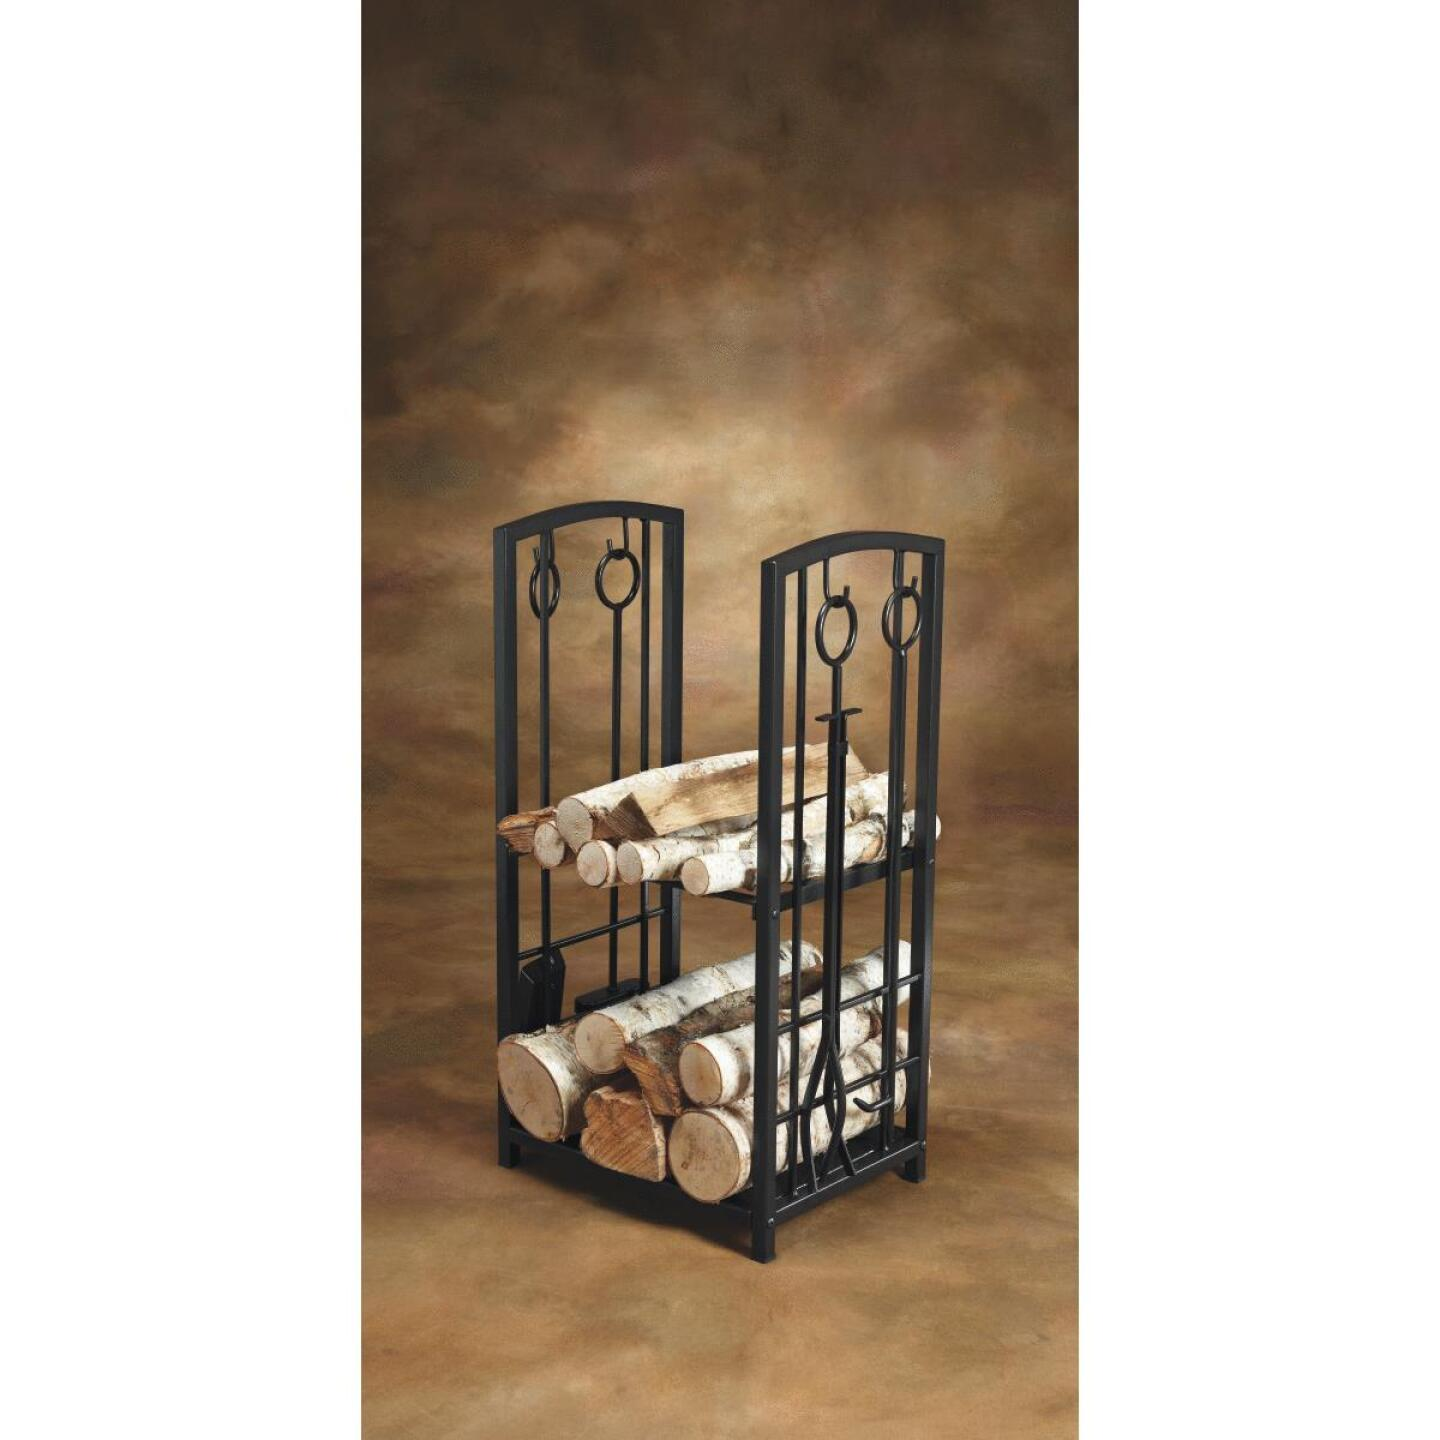 Home Impressions Fireplace Tool Set with Log Rack Image 2